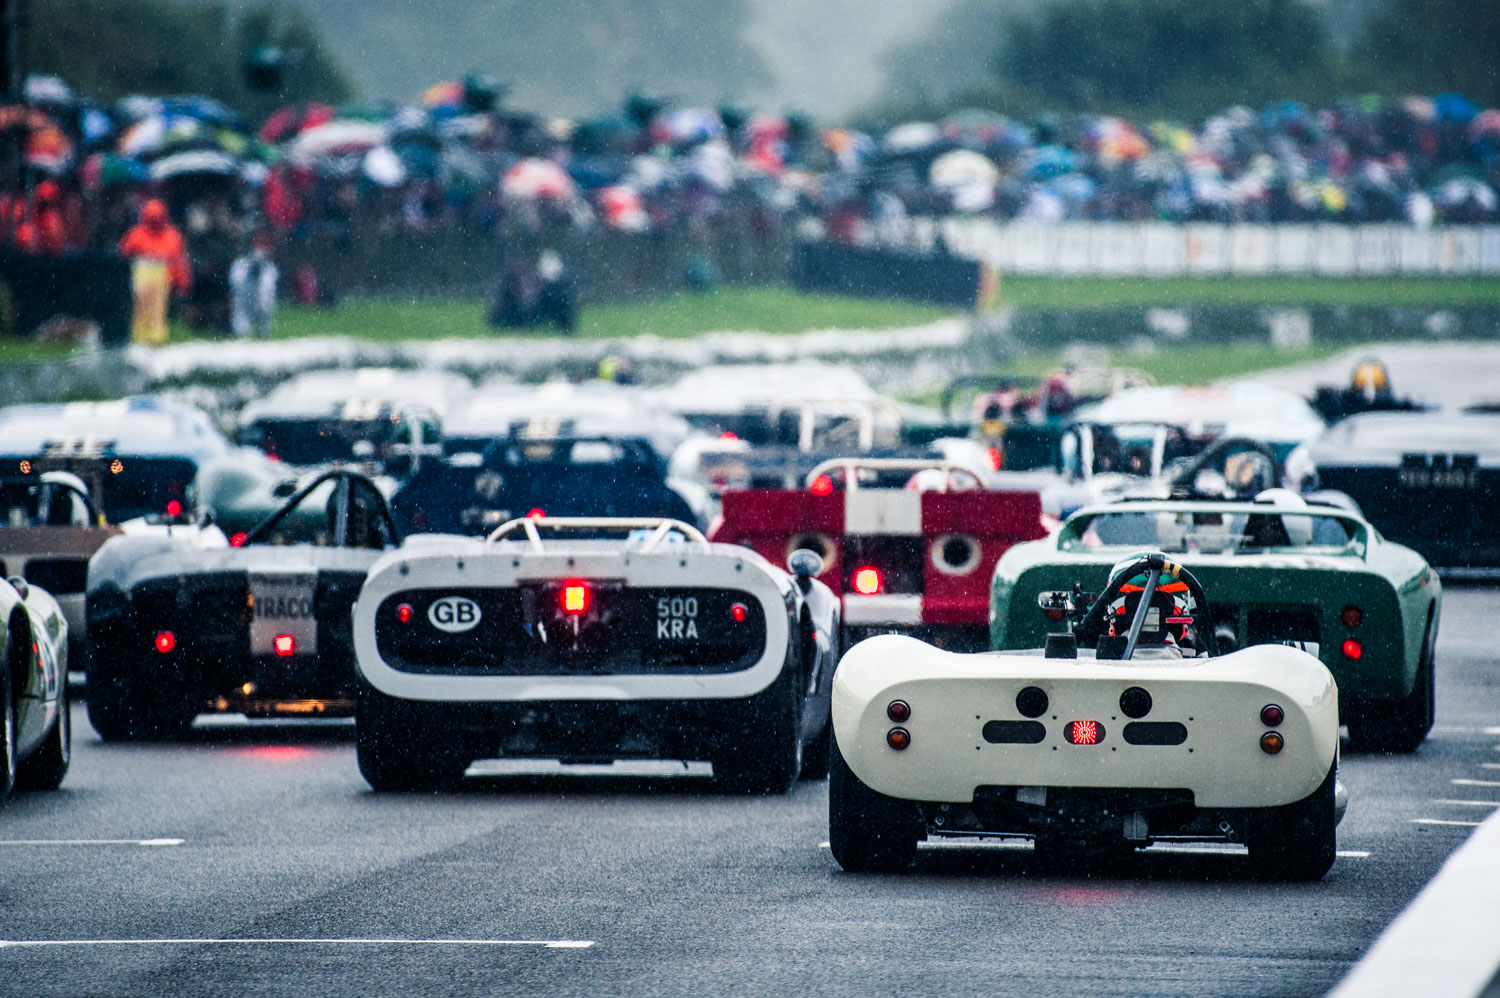 Jayson-Fong-Photography-Form-and-function-international-Sports-Cars-Goodwood-Revival.jpg